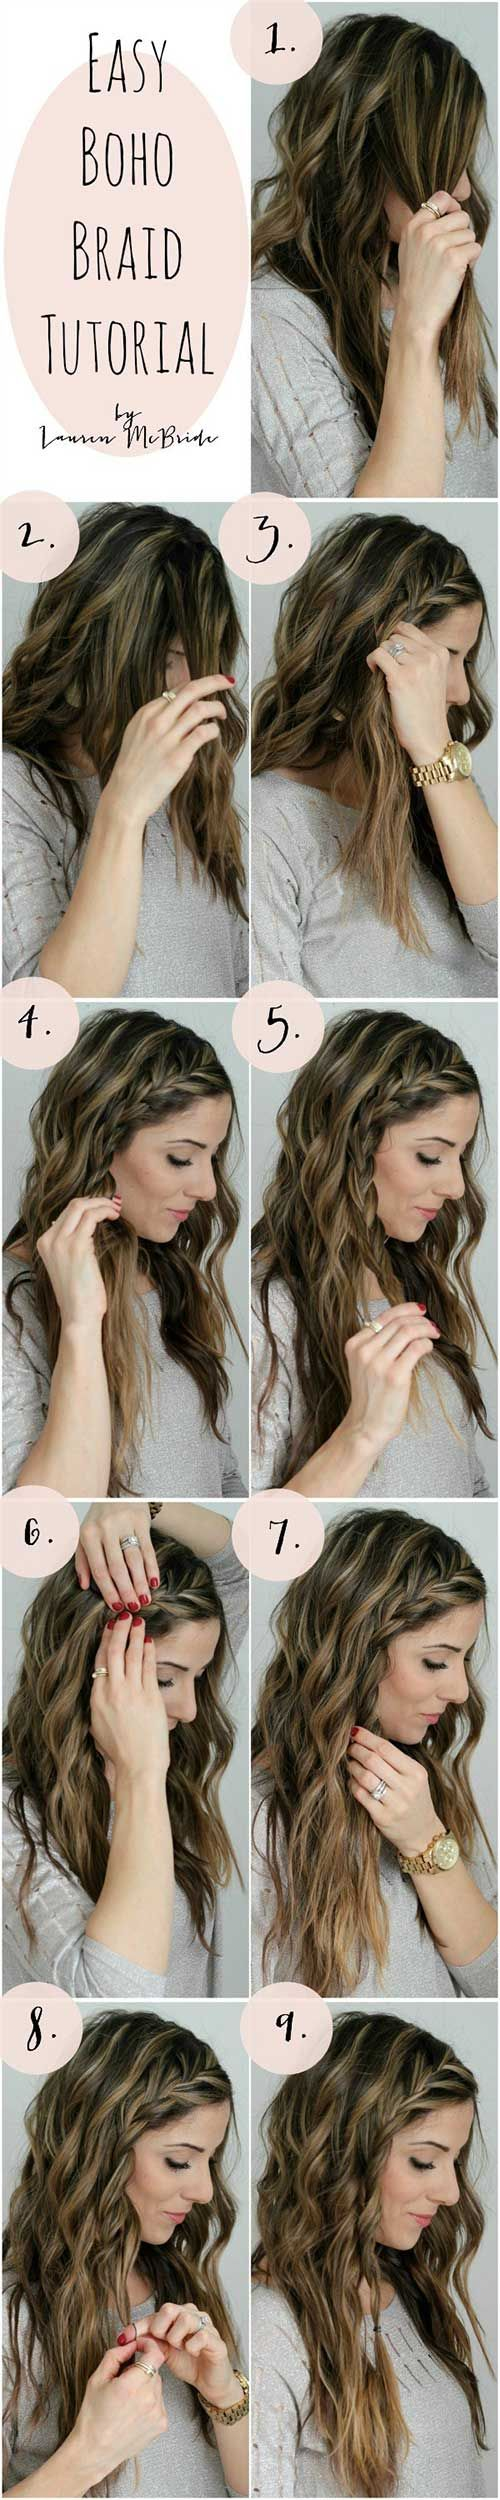 best hair images on pinterest hairstyle tutorials long hair